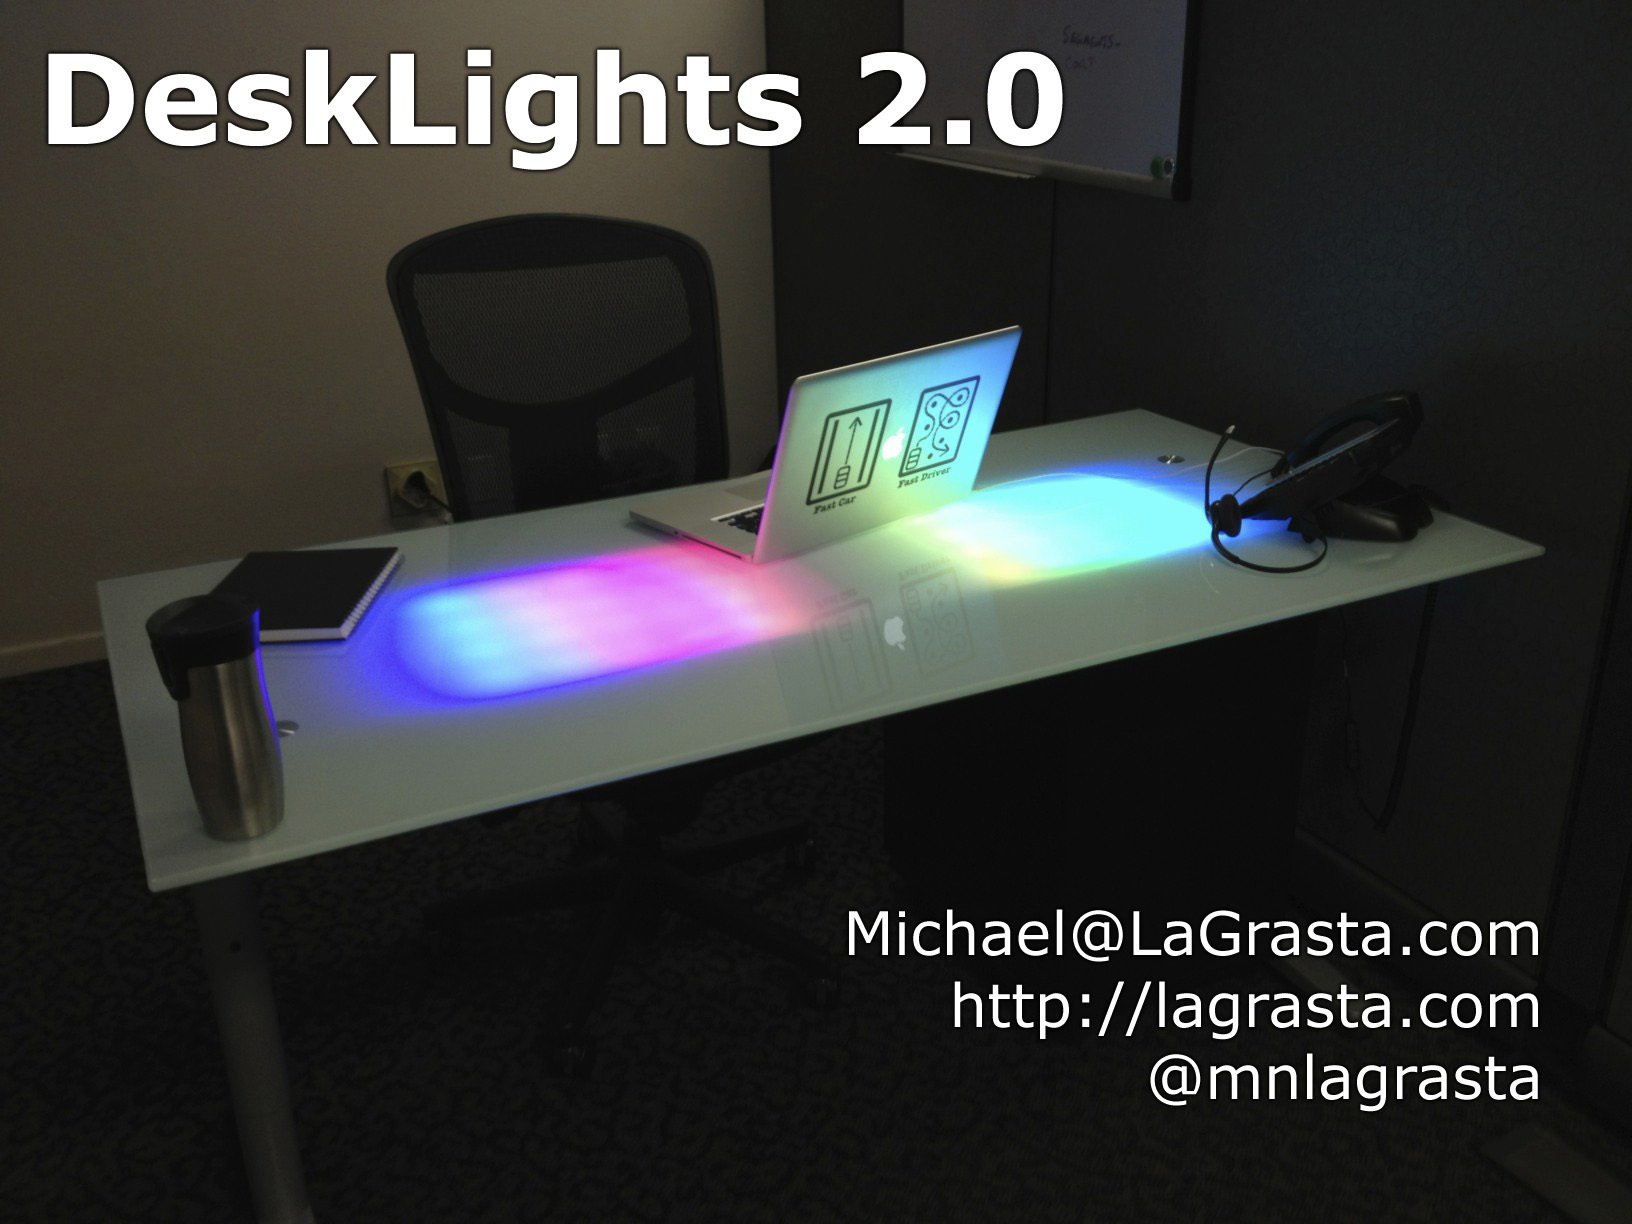 New Project: DeskLights 2.0